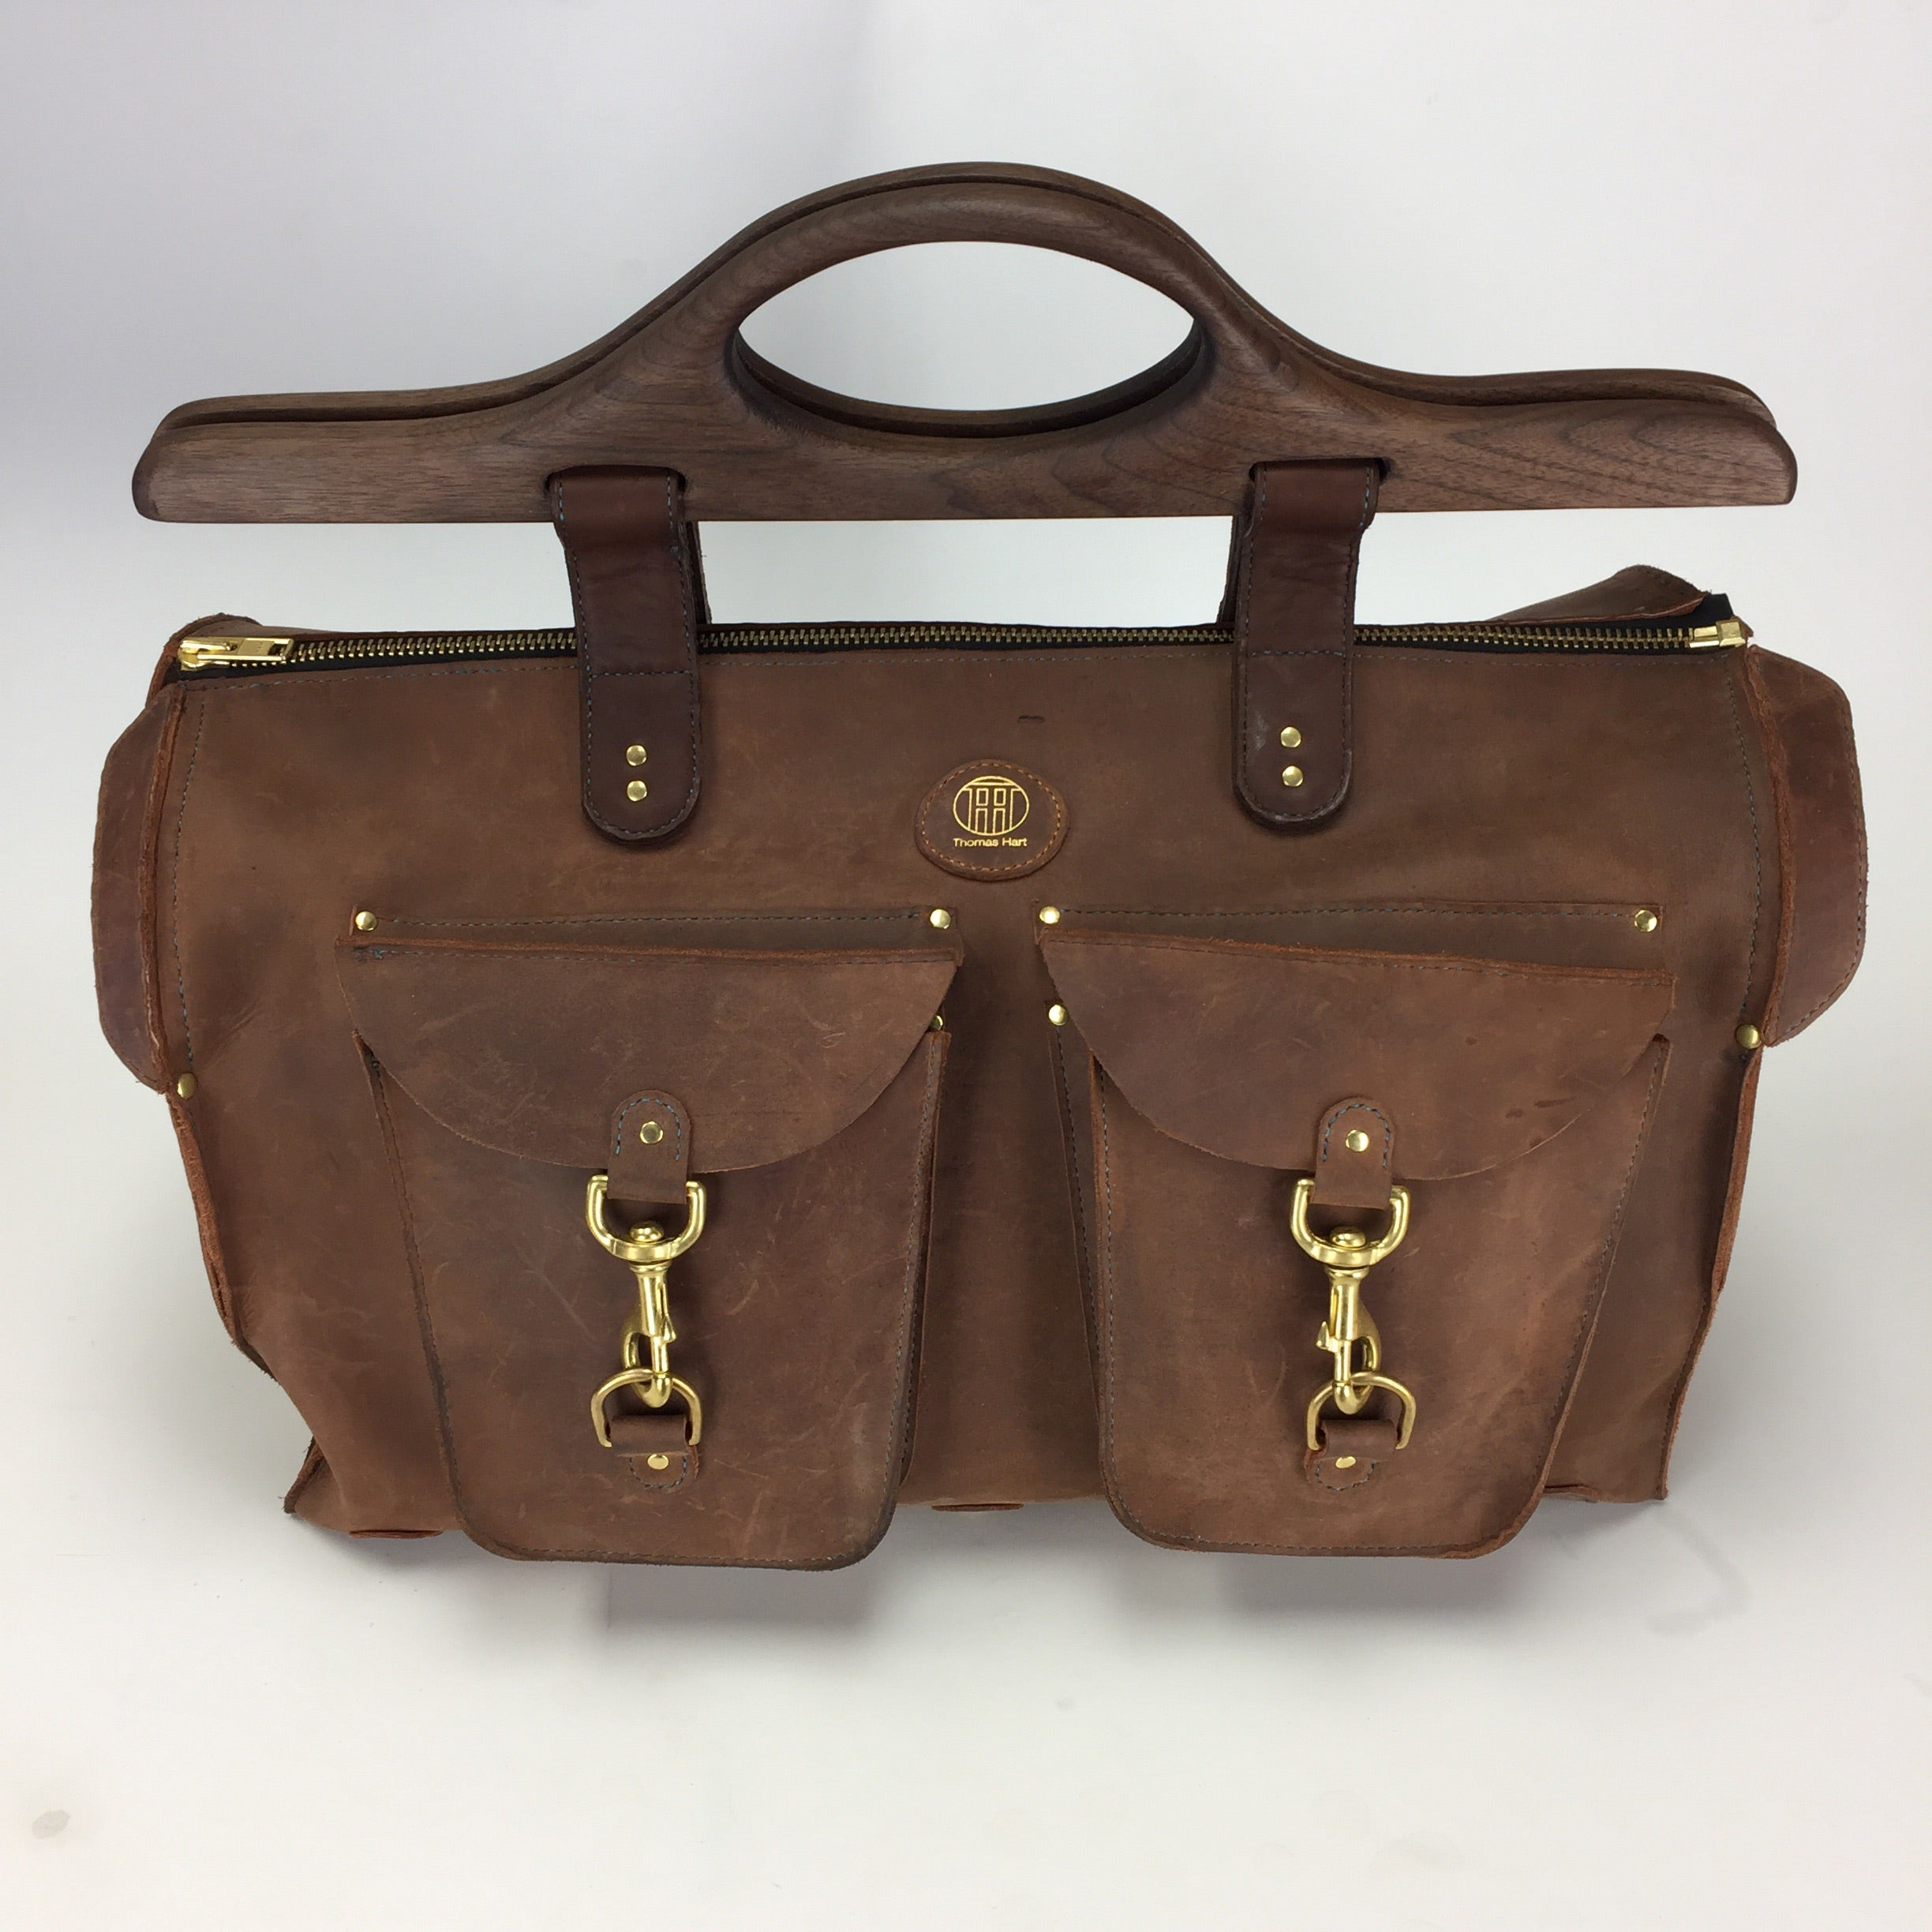 Saddle stitched large leather duffle bag with wood handles